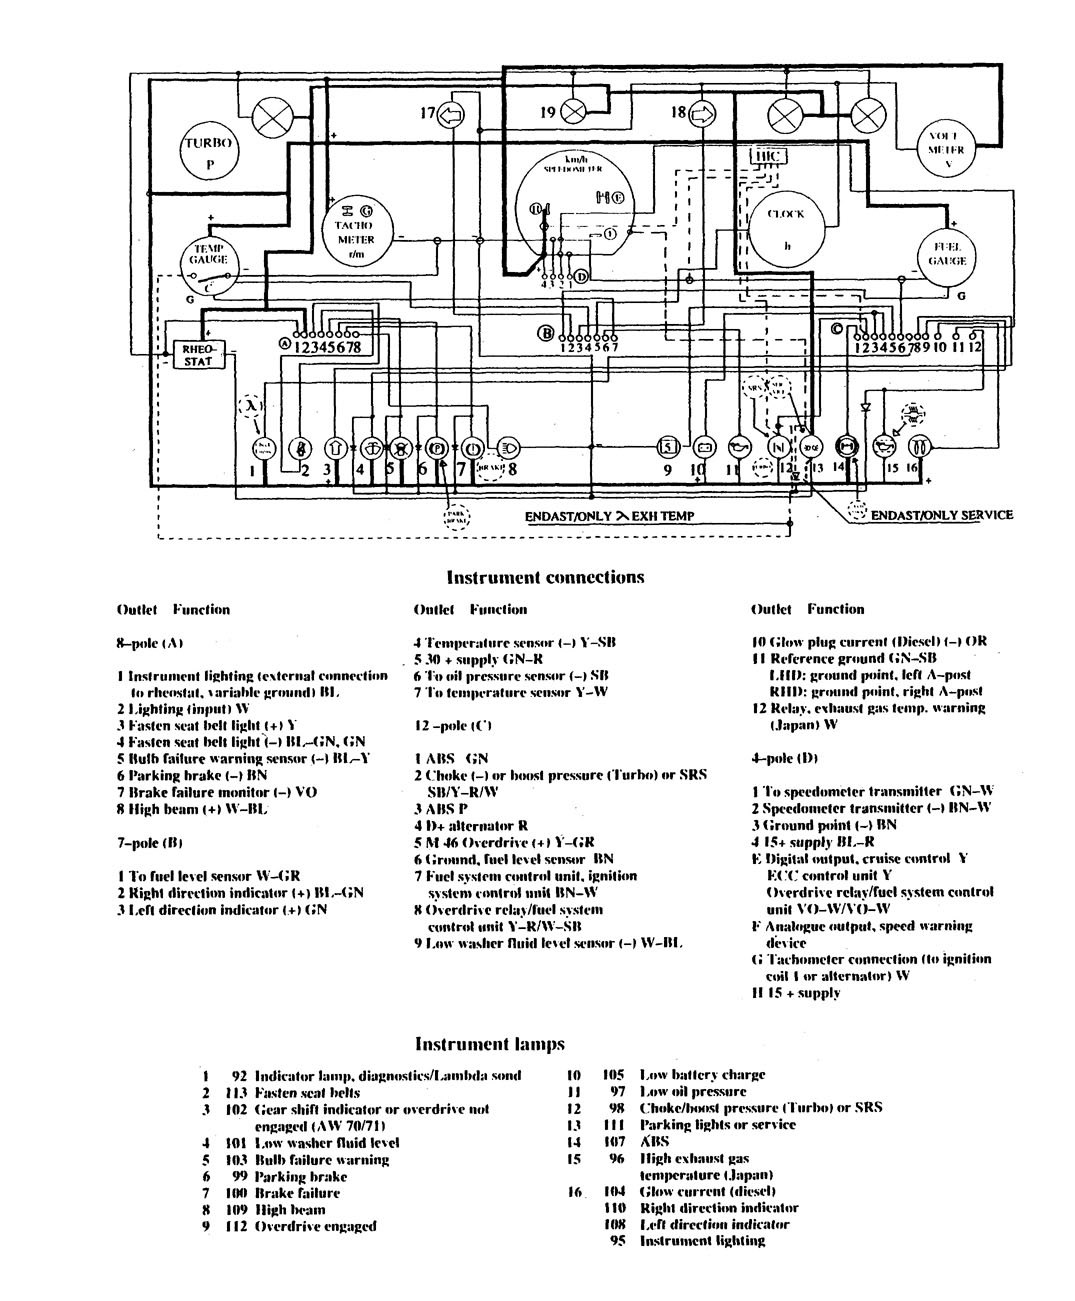 1998 Volvo V70 Fuse Diagram Great Design Of Wiring Ignition Switch 98 S70 Glt Engine Front Brakes Radio